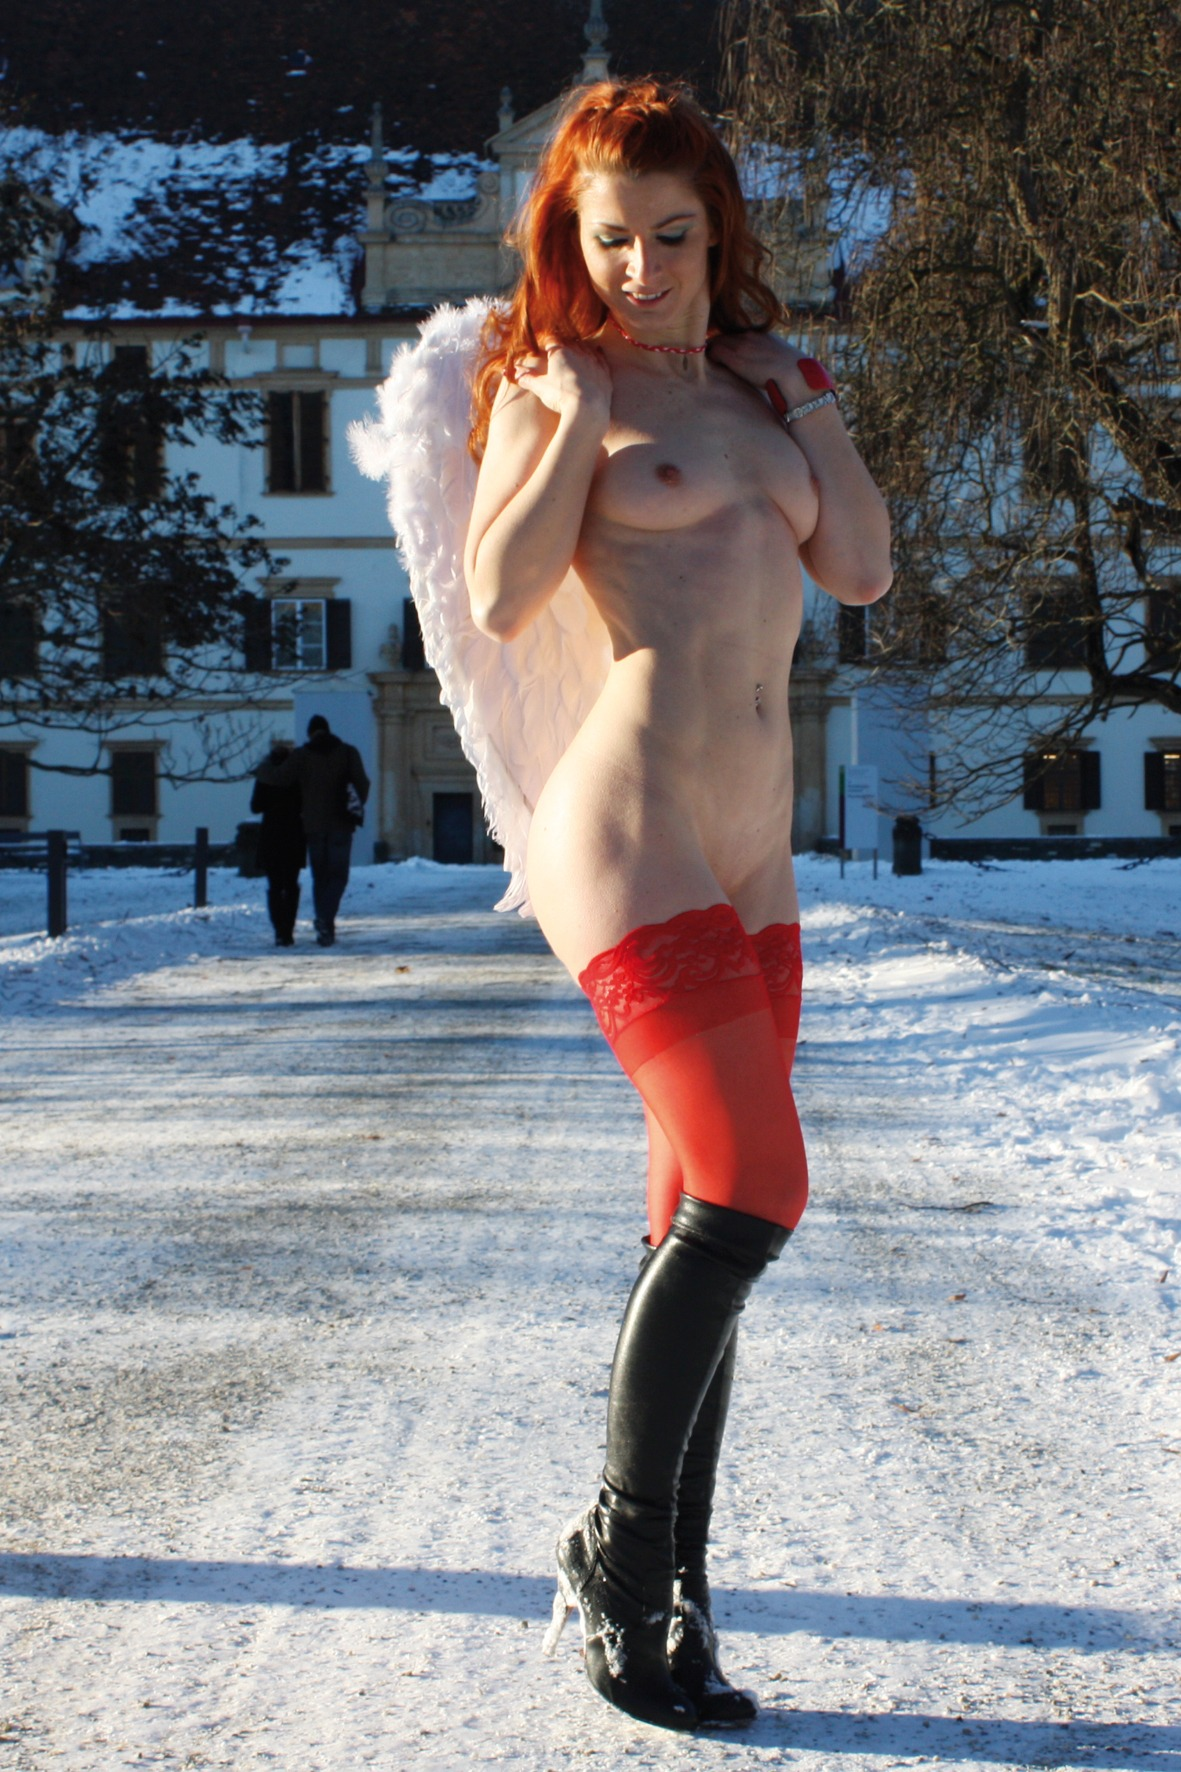 Nude girl public snow